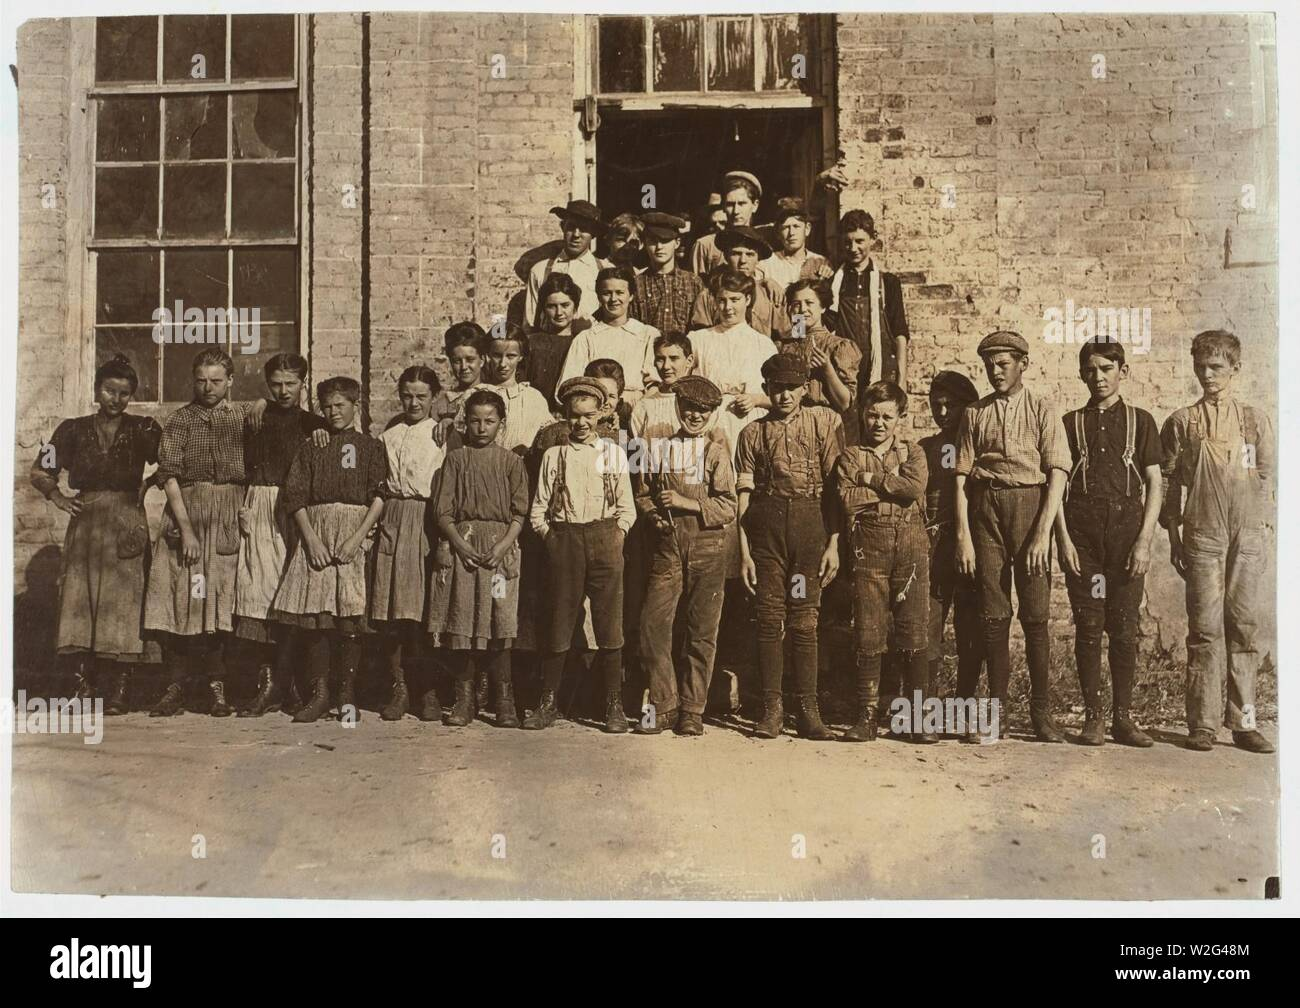 Cherryville Mfg. Co., Cherryville, N.C. A few of the workers. - Stock Image